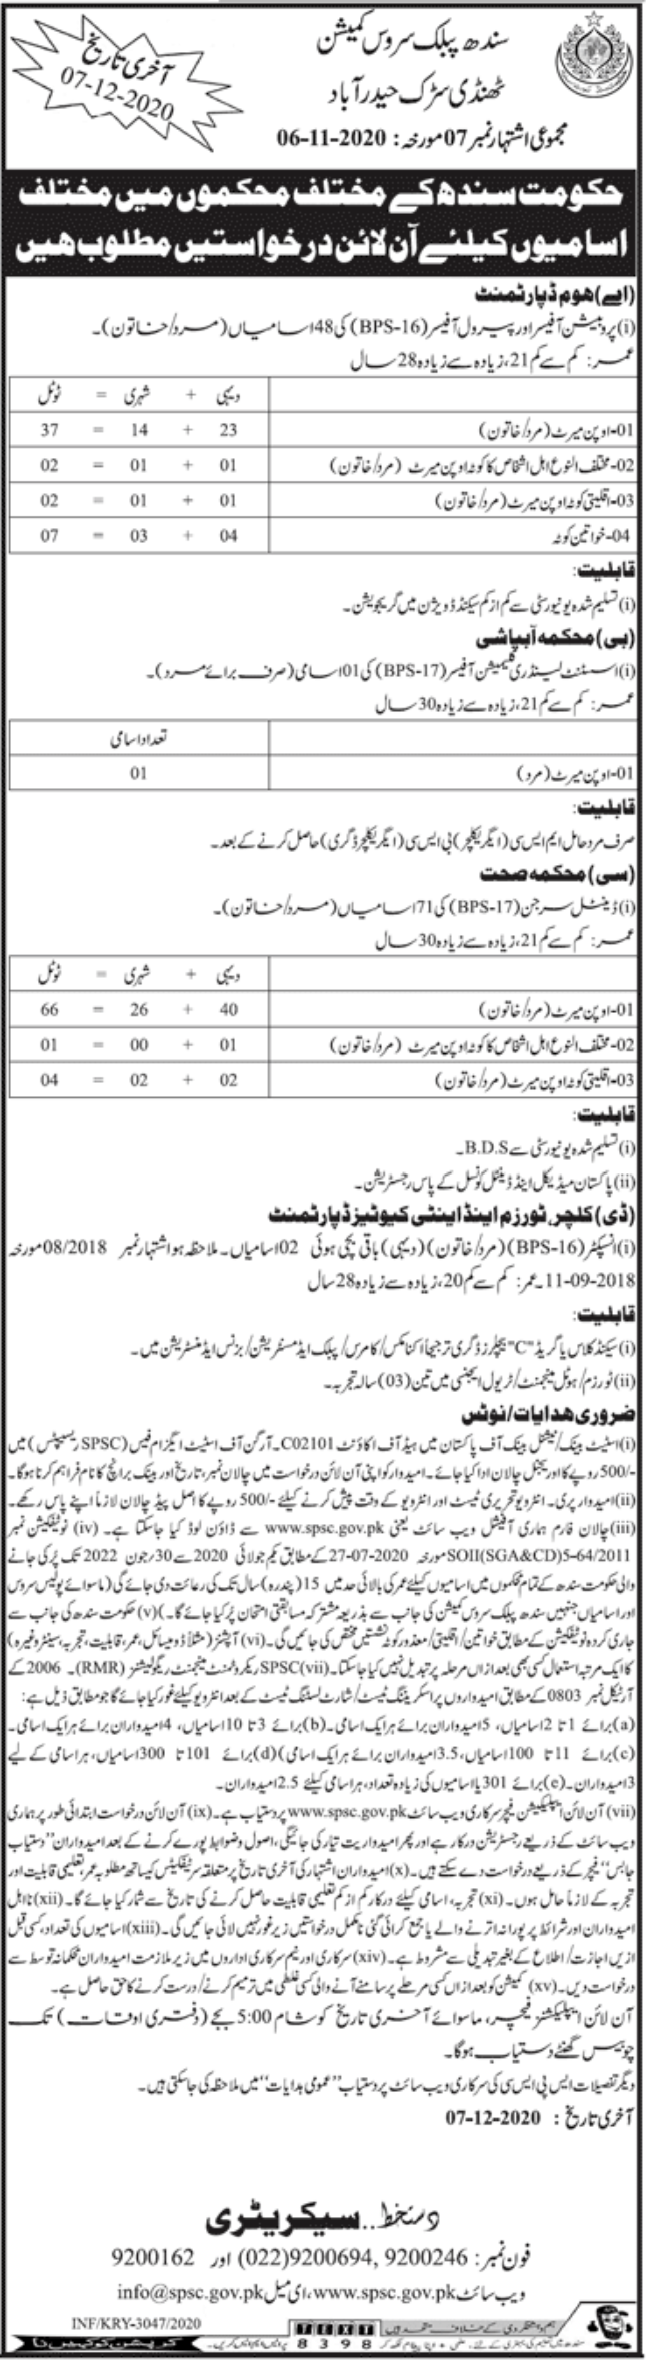 Sindh Public Service Commission Hyderabad Jobs November 2020